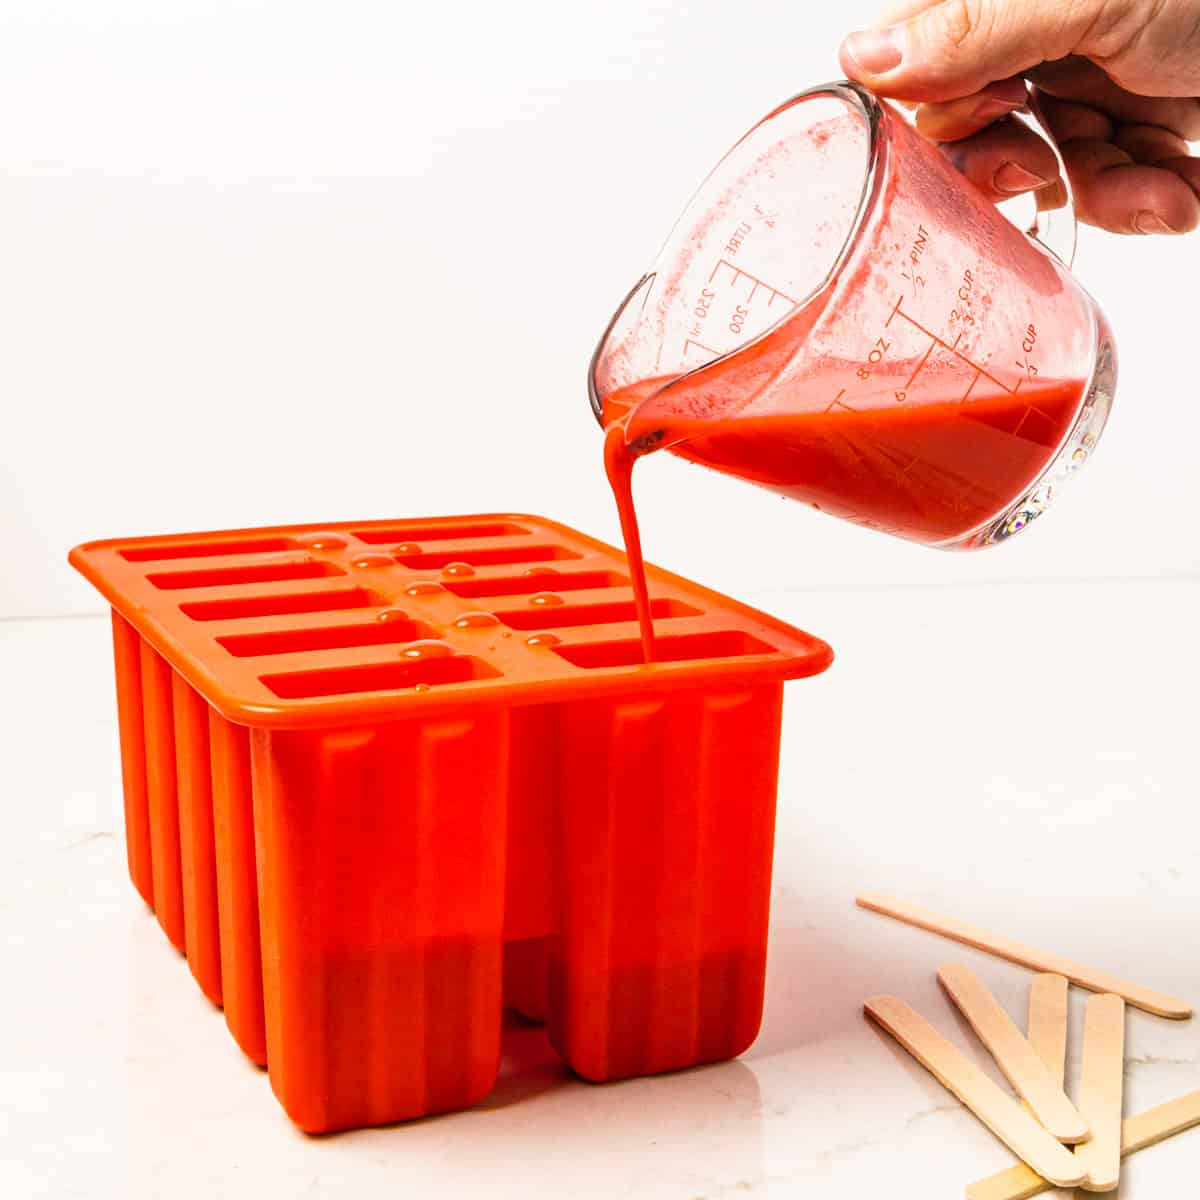 The strawberry mixture is shown being poured into the popsicle mold.